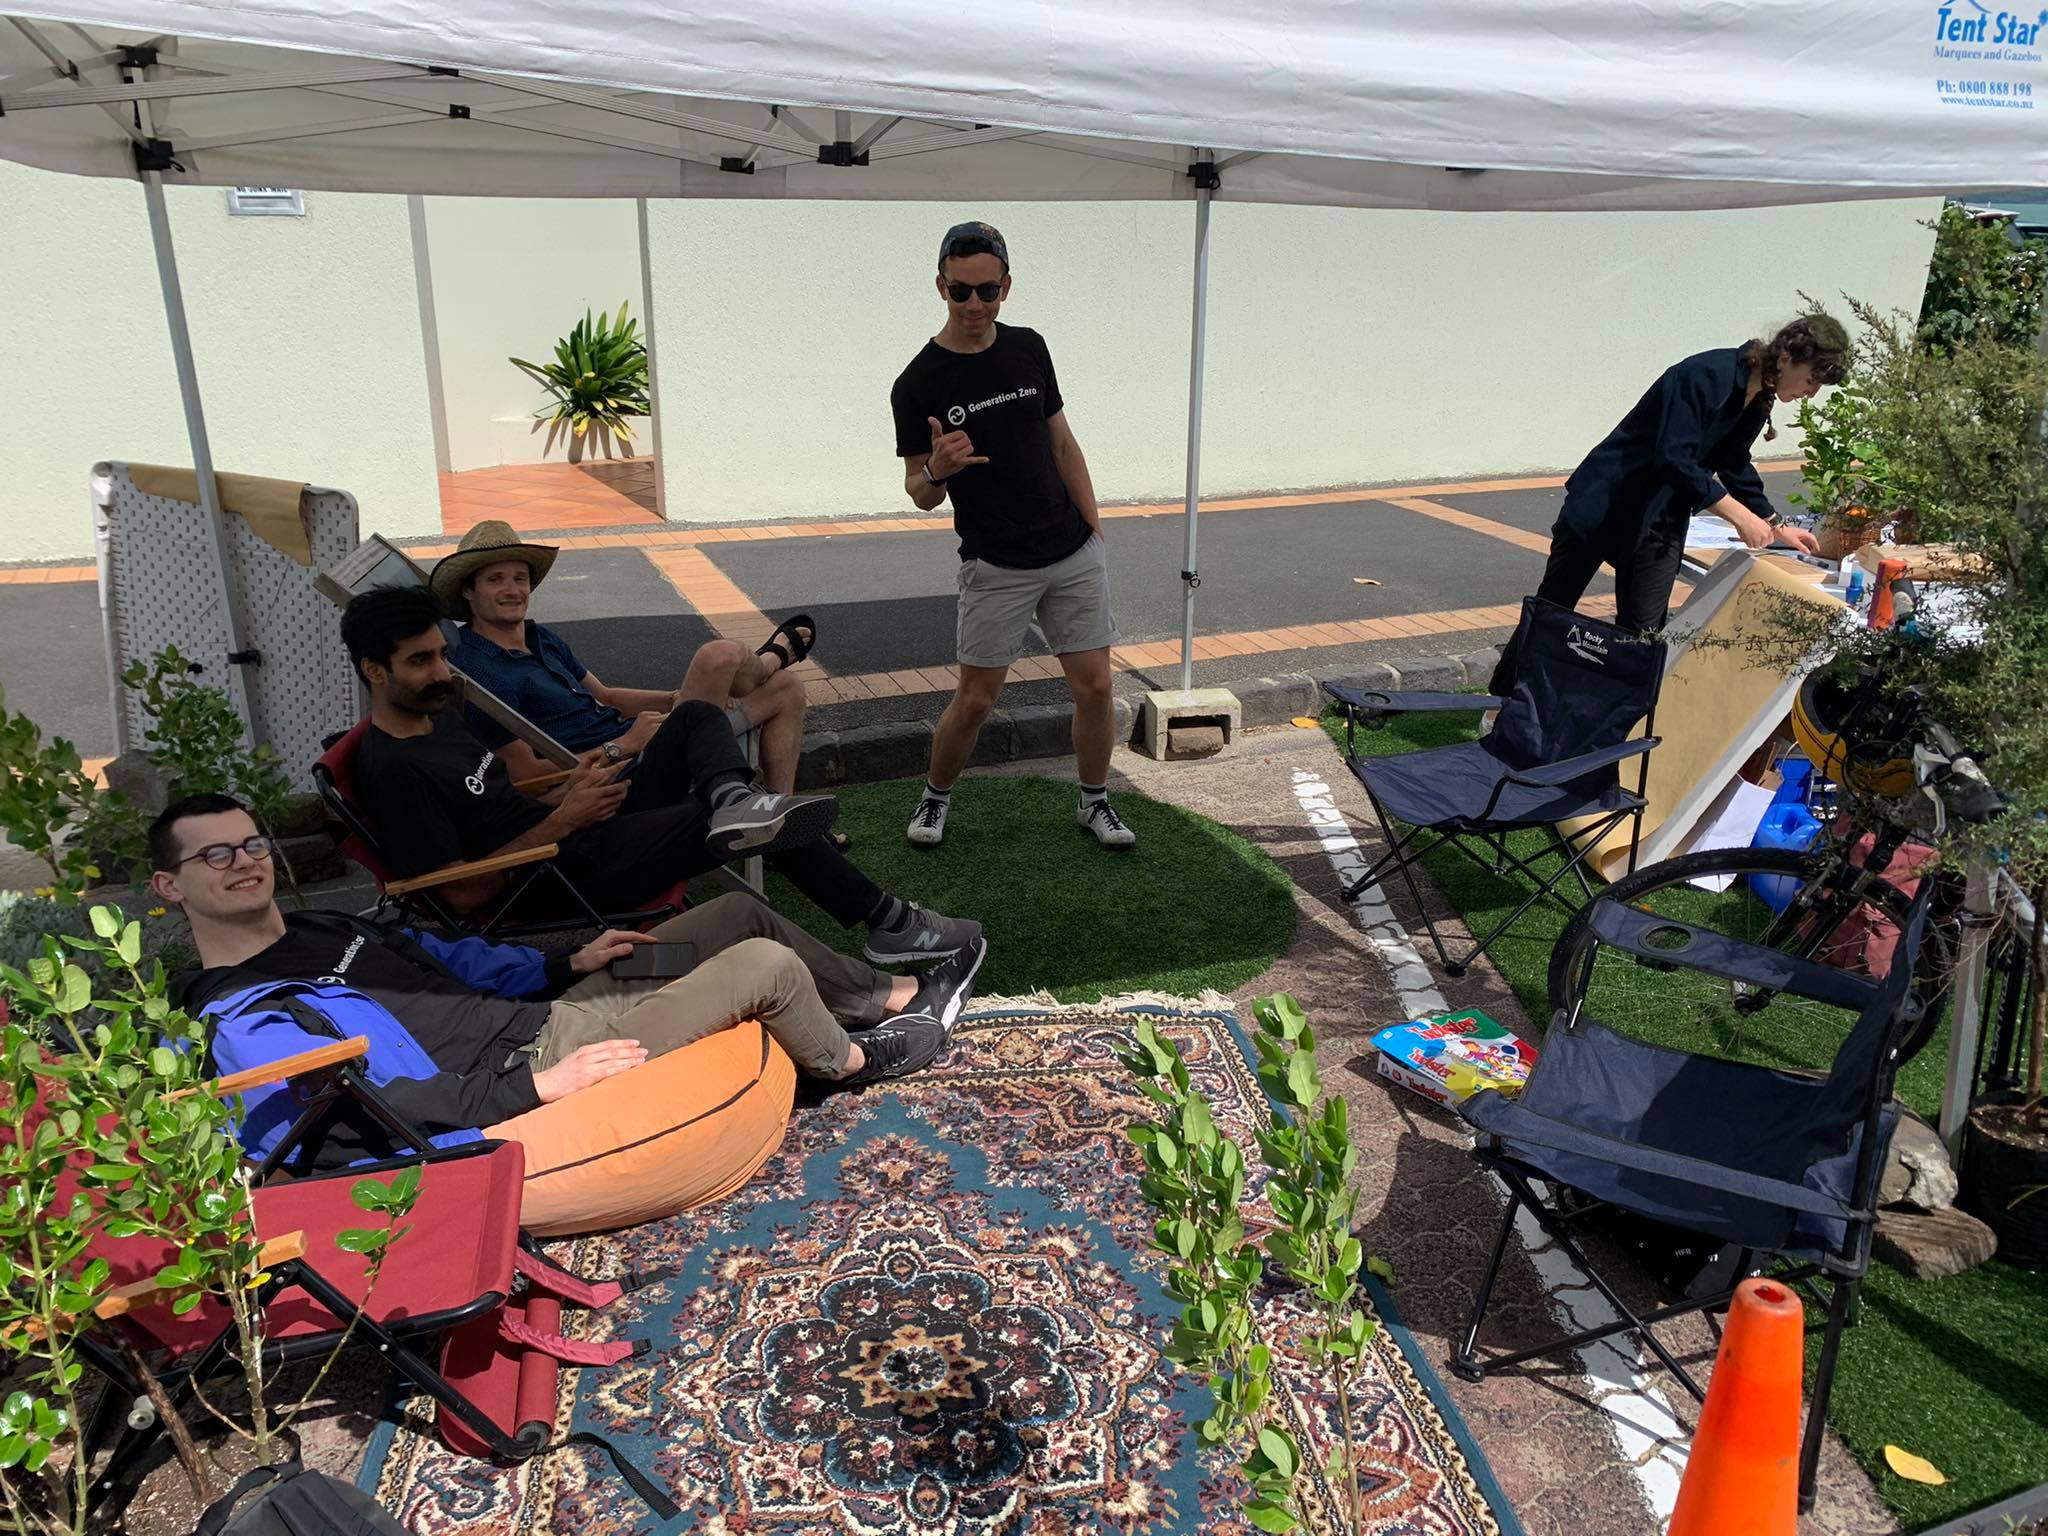 A carpark covered in a rug and turf with people lounging in beanbags and chairs under the shade of a marquee. There are also plants and roadcones